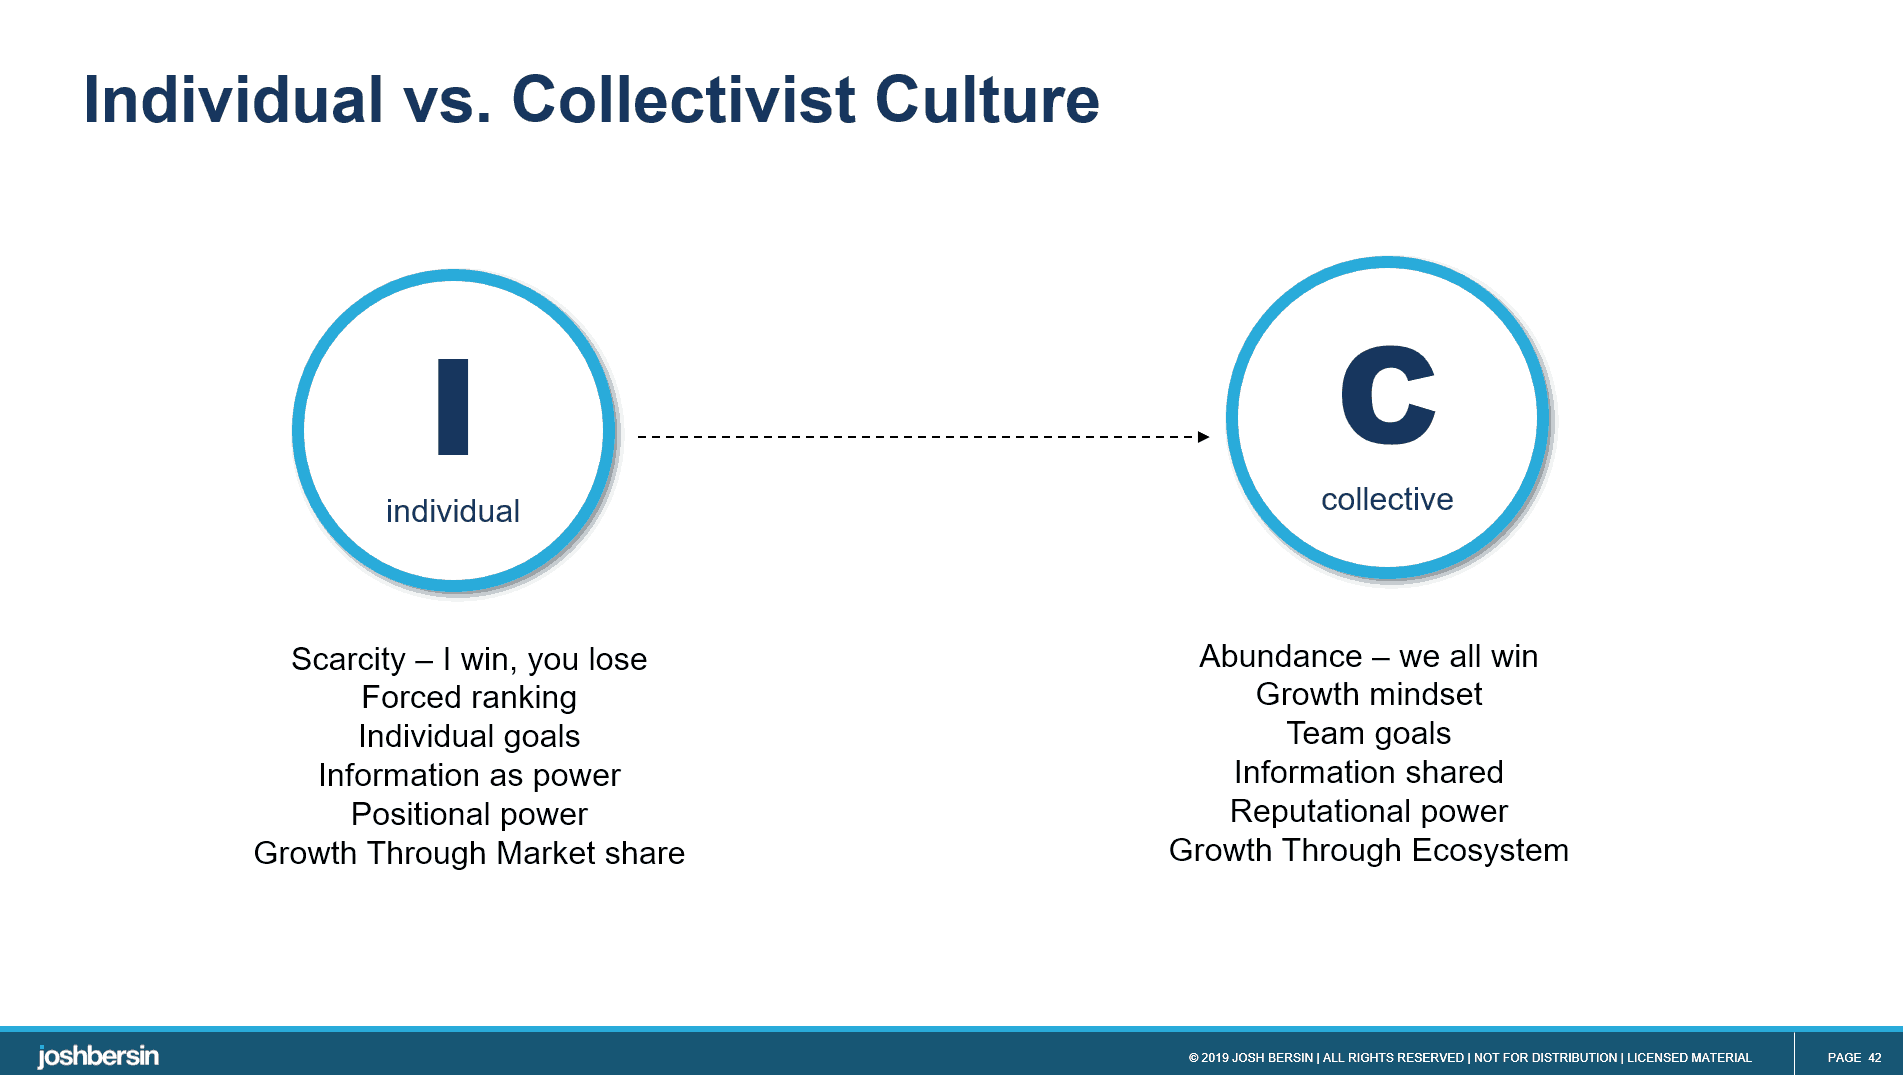 individual vs. collective